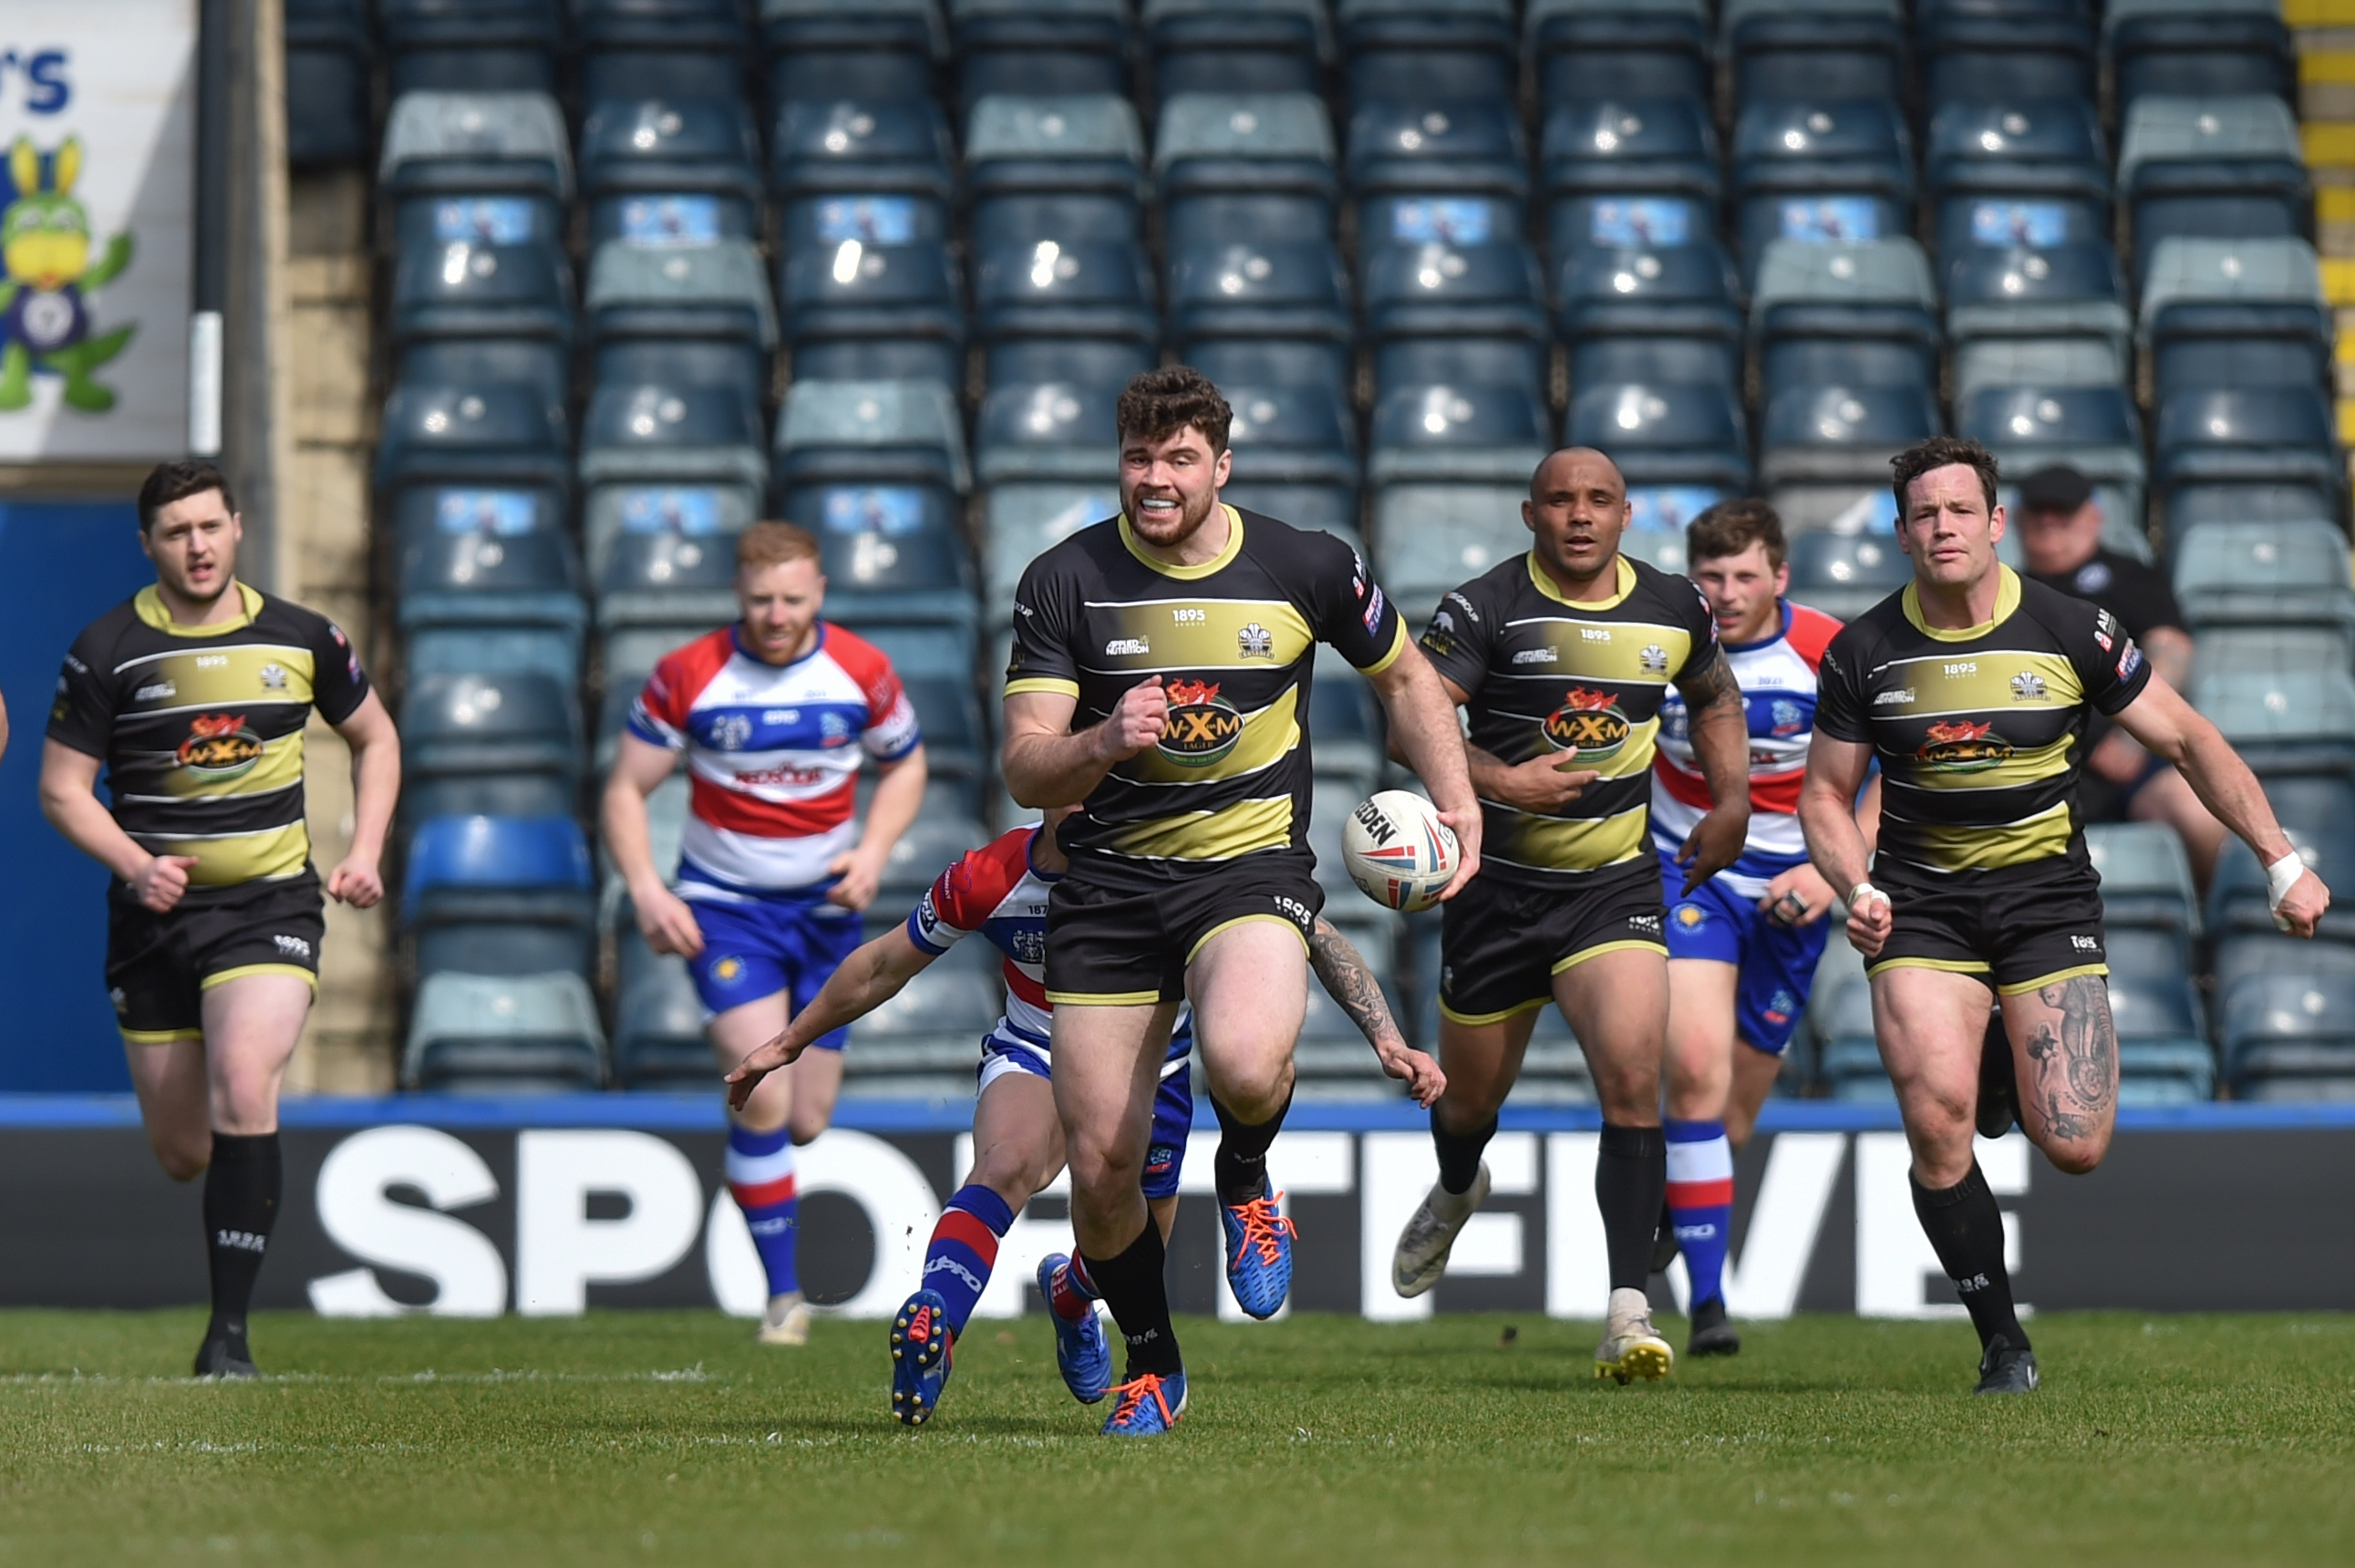 Report: Rochdale 22-12 Crusaders